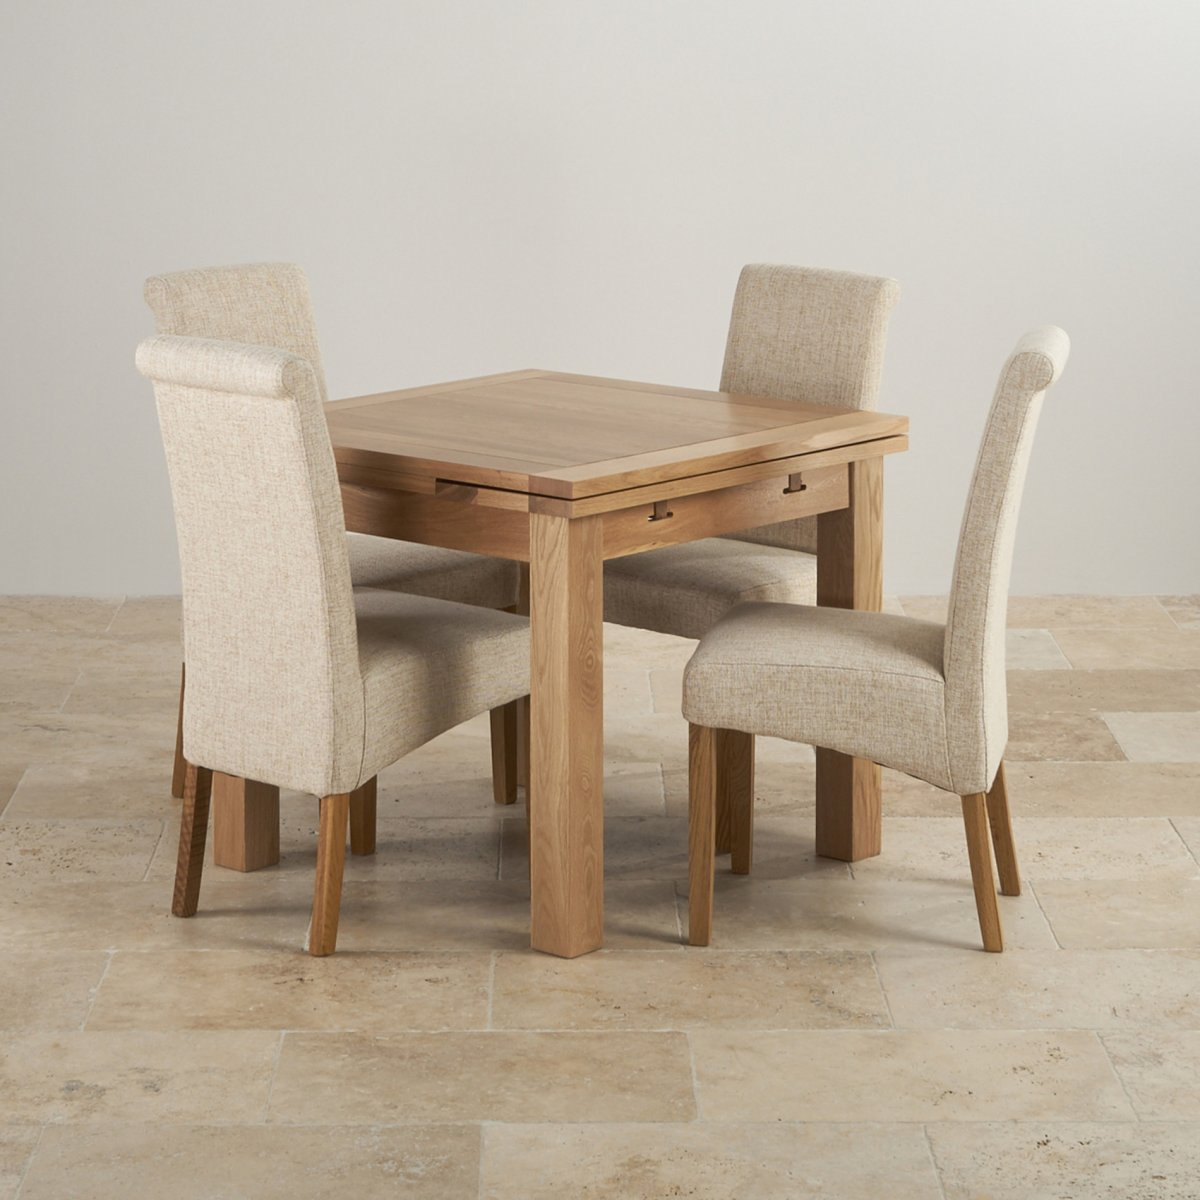 Dorset Oak 3ft Dining Table with 4 Beige Fabric Chairs